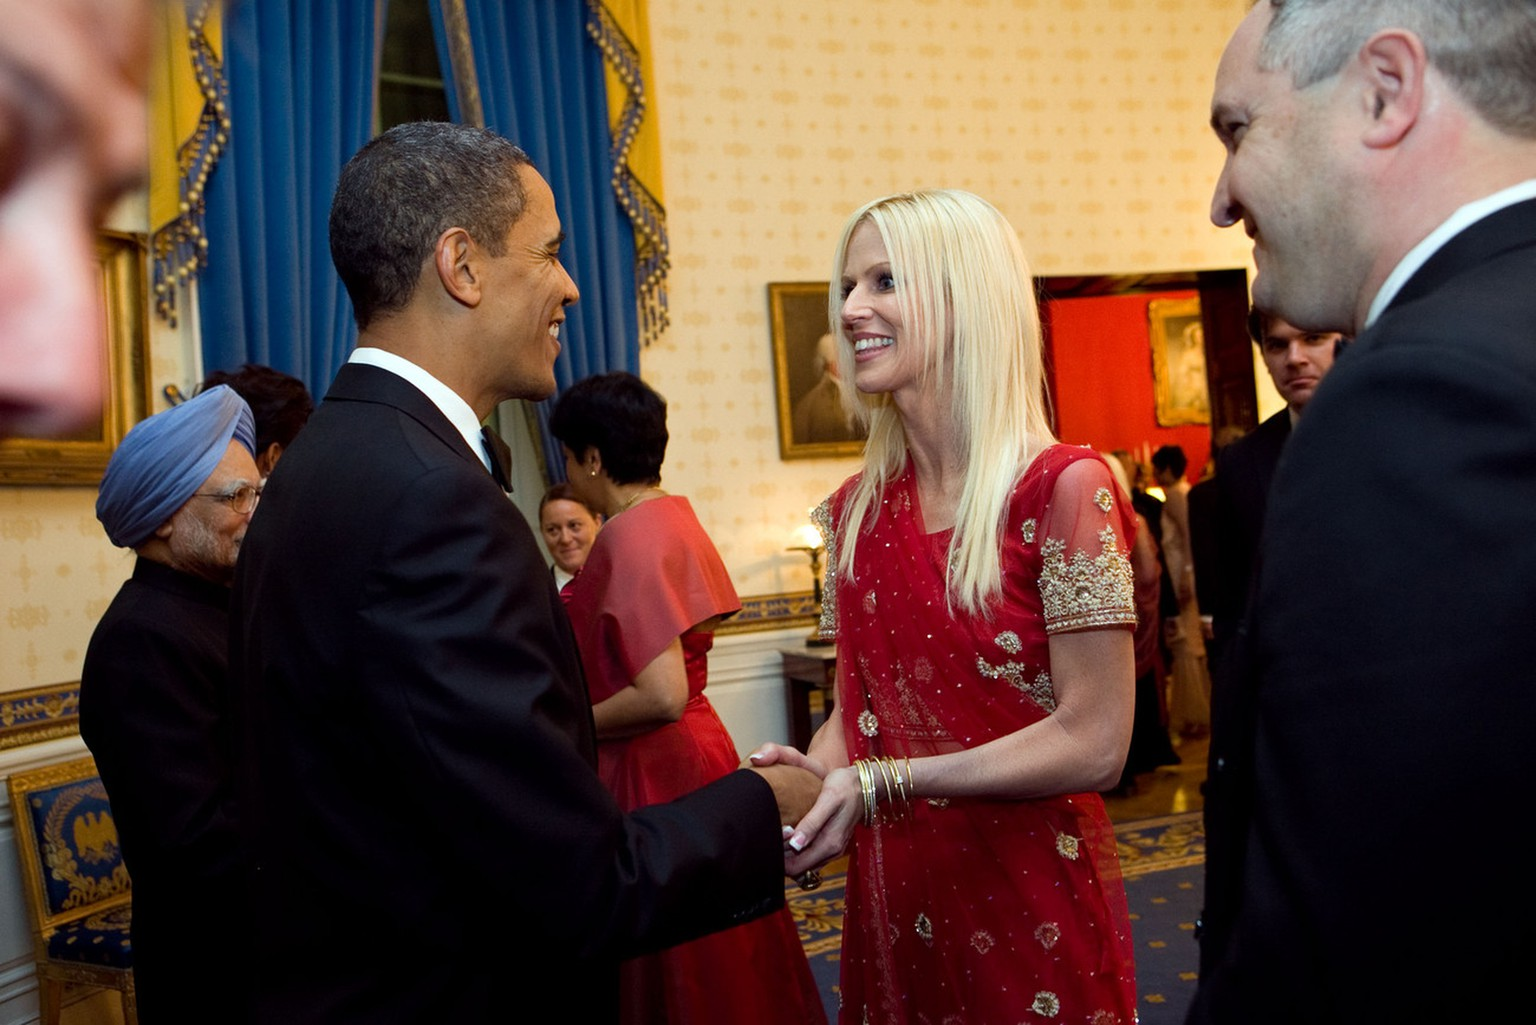 This photo released by the White House Nov. 27, 2009, shows President Barack Obama greeting  Michaele and Tareq Salahi, right, at a State Dinner hosted by Obama for Indian Prime Minister Manmohan Singh at the White House in Washington Tuesday, Nov. 24, 2009.  The Secret Service is looking into its own security procedures after determining that the uninvited Virginia couple managed to slip into the dinner. (AP Photo/The White House, Samantha Appleton)